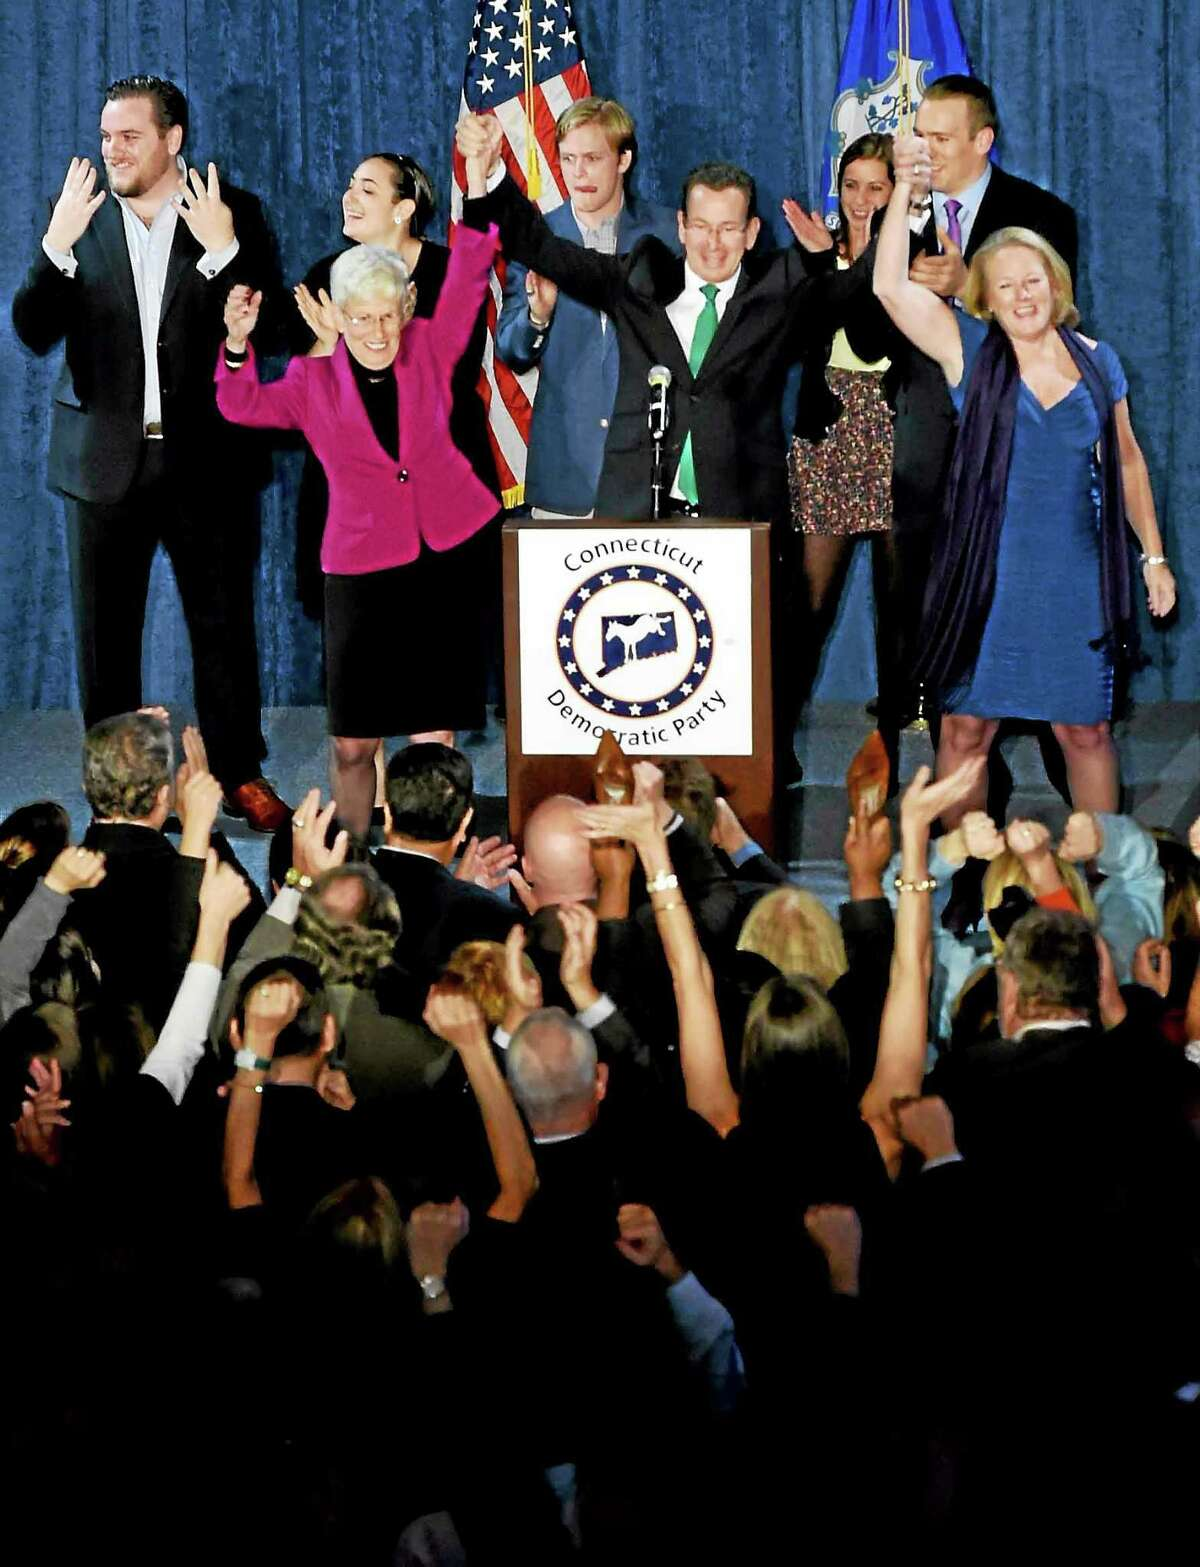 Incumbent Connecticut Gov. Malloy and Lt. Gov. Nancy Wyman,left, and Malloy's wife Cathy right, give a post-midnight speech to supporters claiming victory on election night at The Society Room in Hartford, Connecticut during a close race against Republican challenger Tom Foley Tuesday, November 4, 2014.